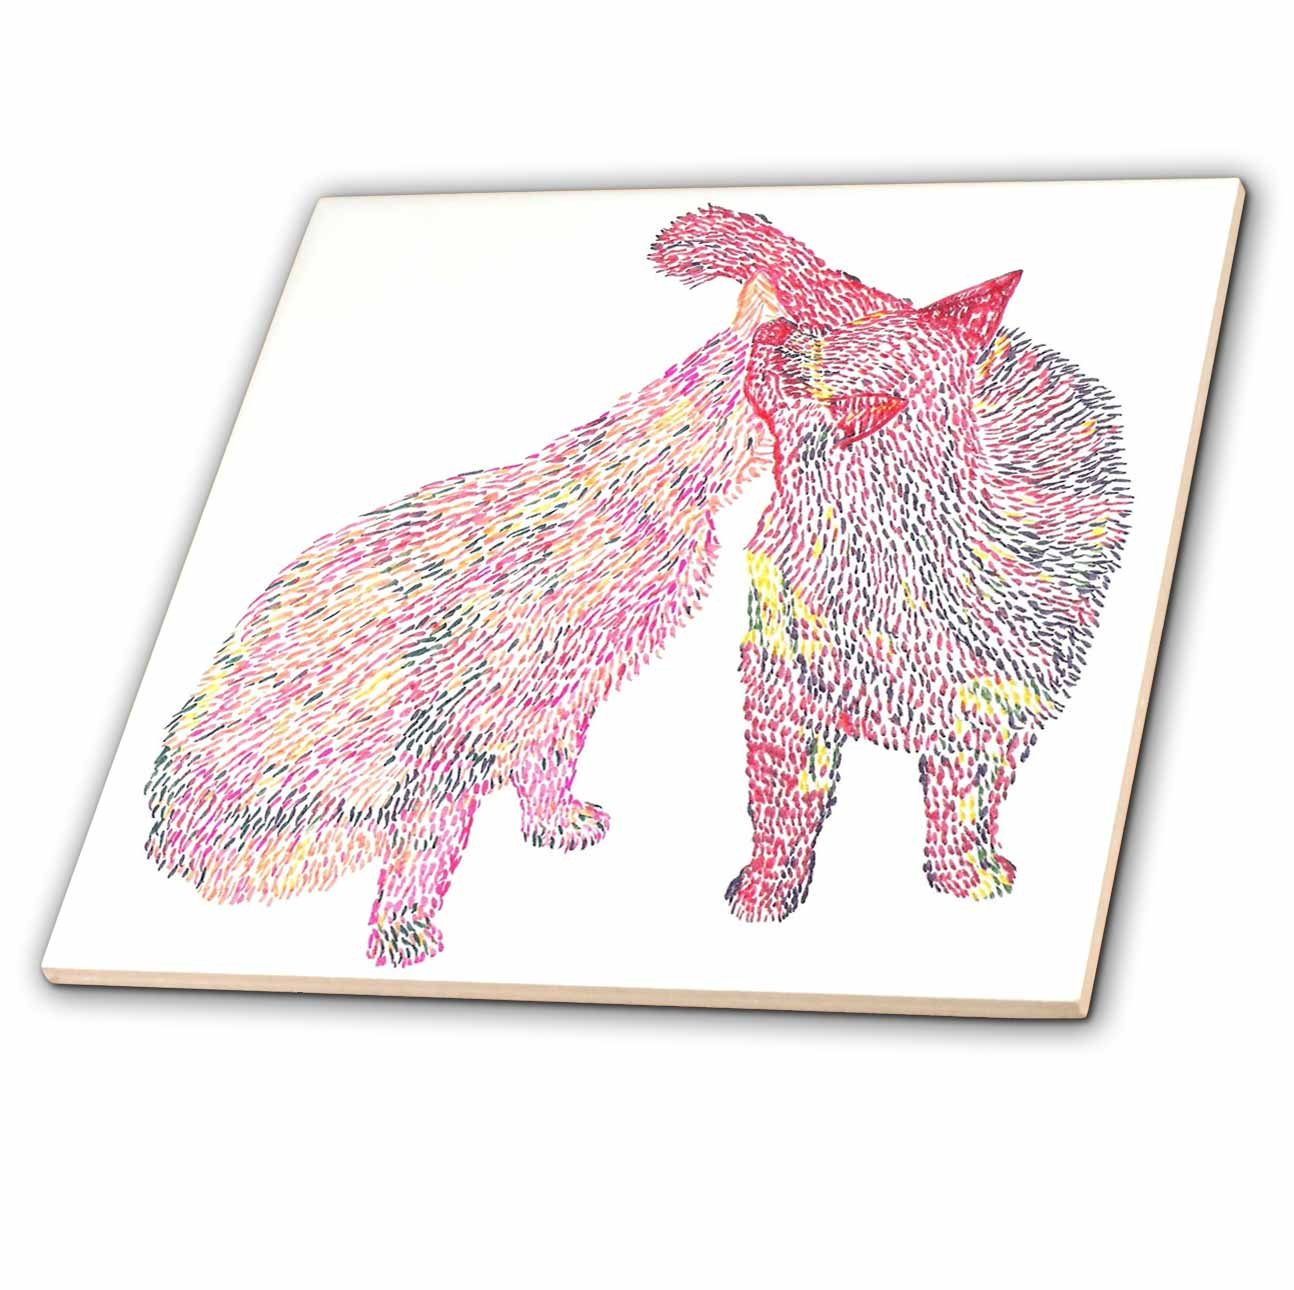 6-Inch 3dRose ct/_15320/_2 Colorful Abstract Cat Kiss-Ceramic Tile